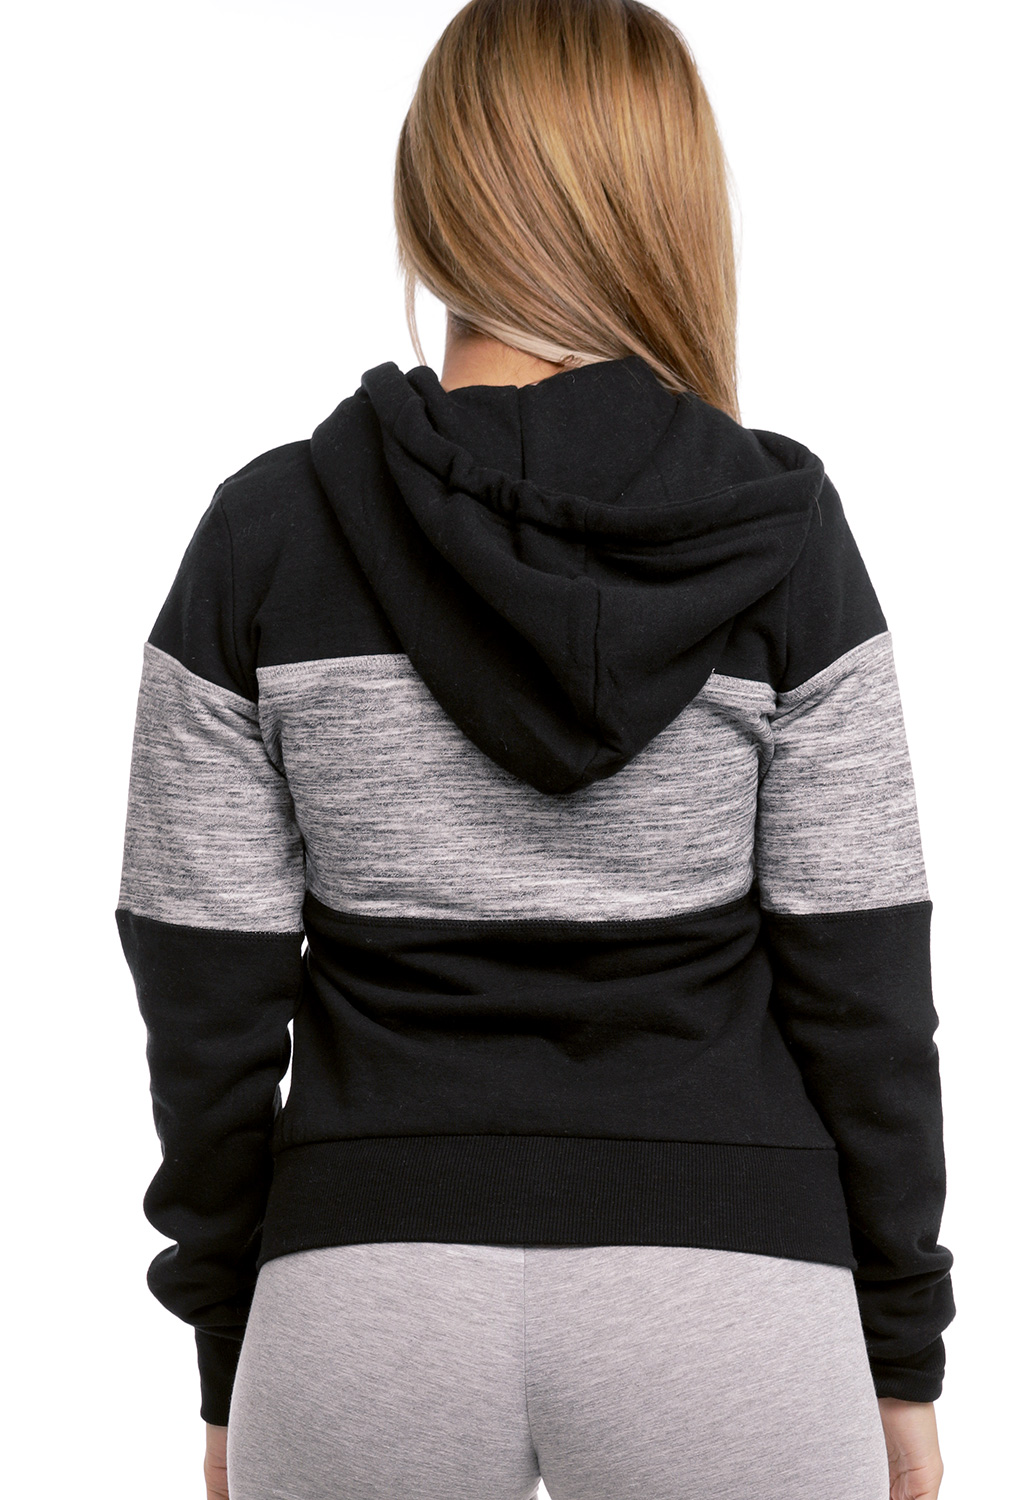 California Graphic Zip Up Sweater